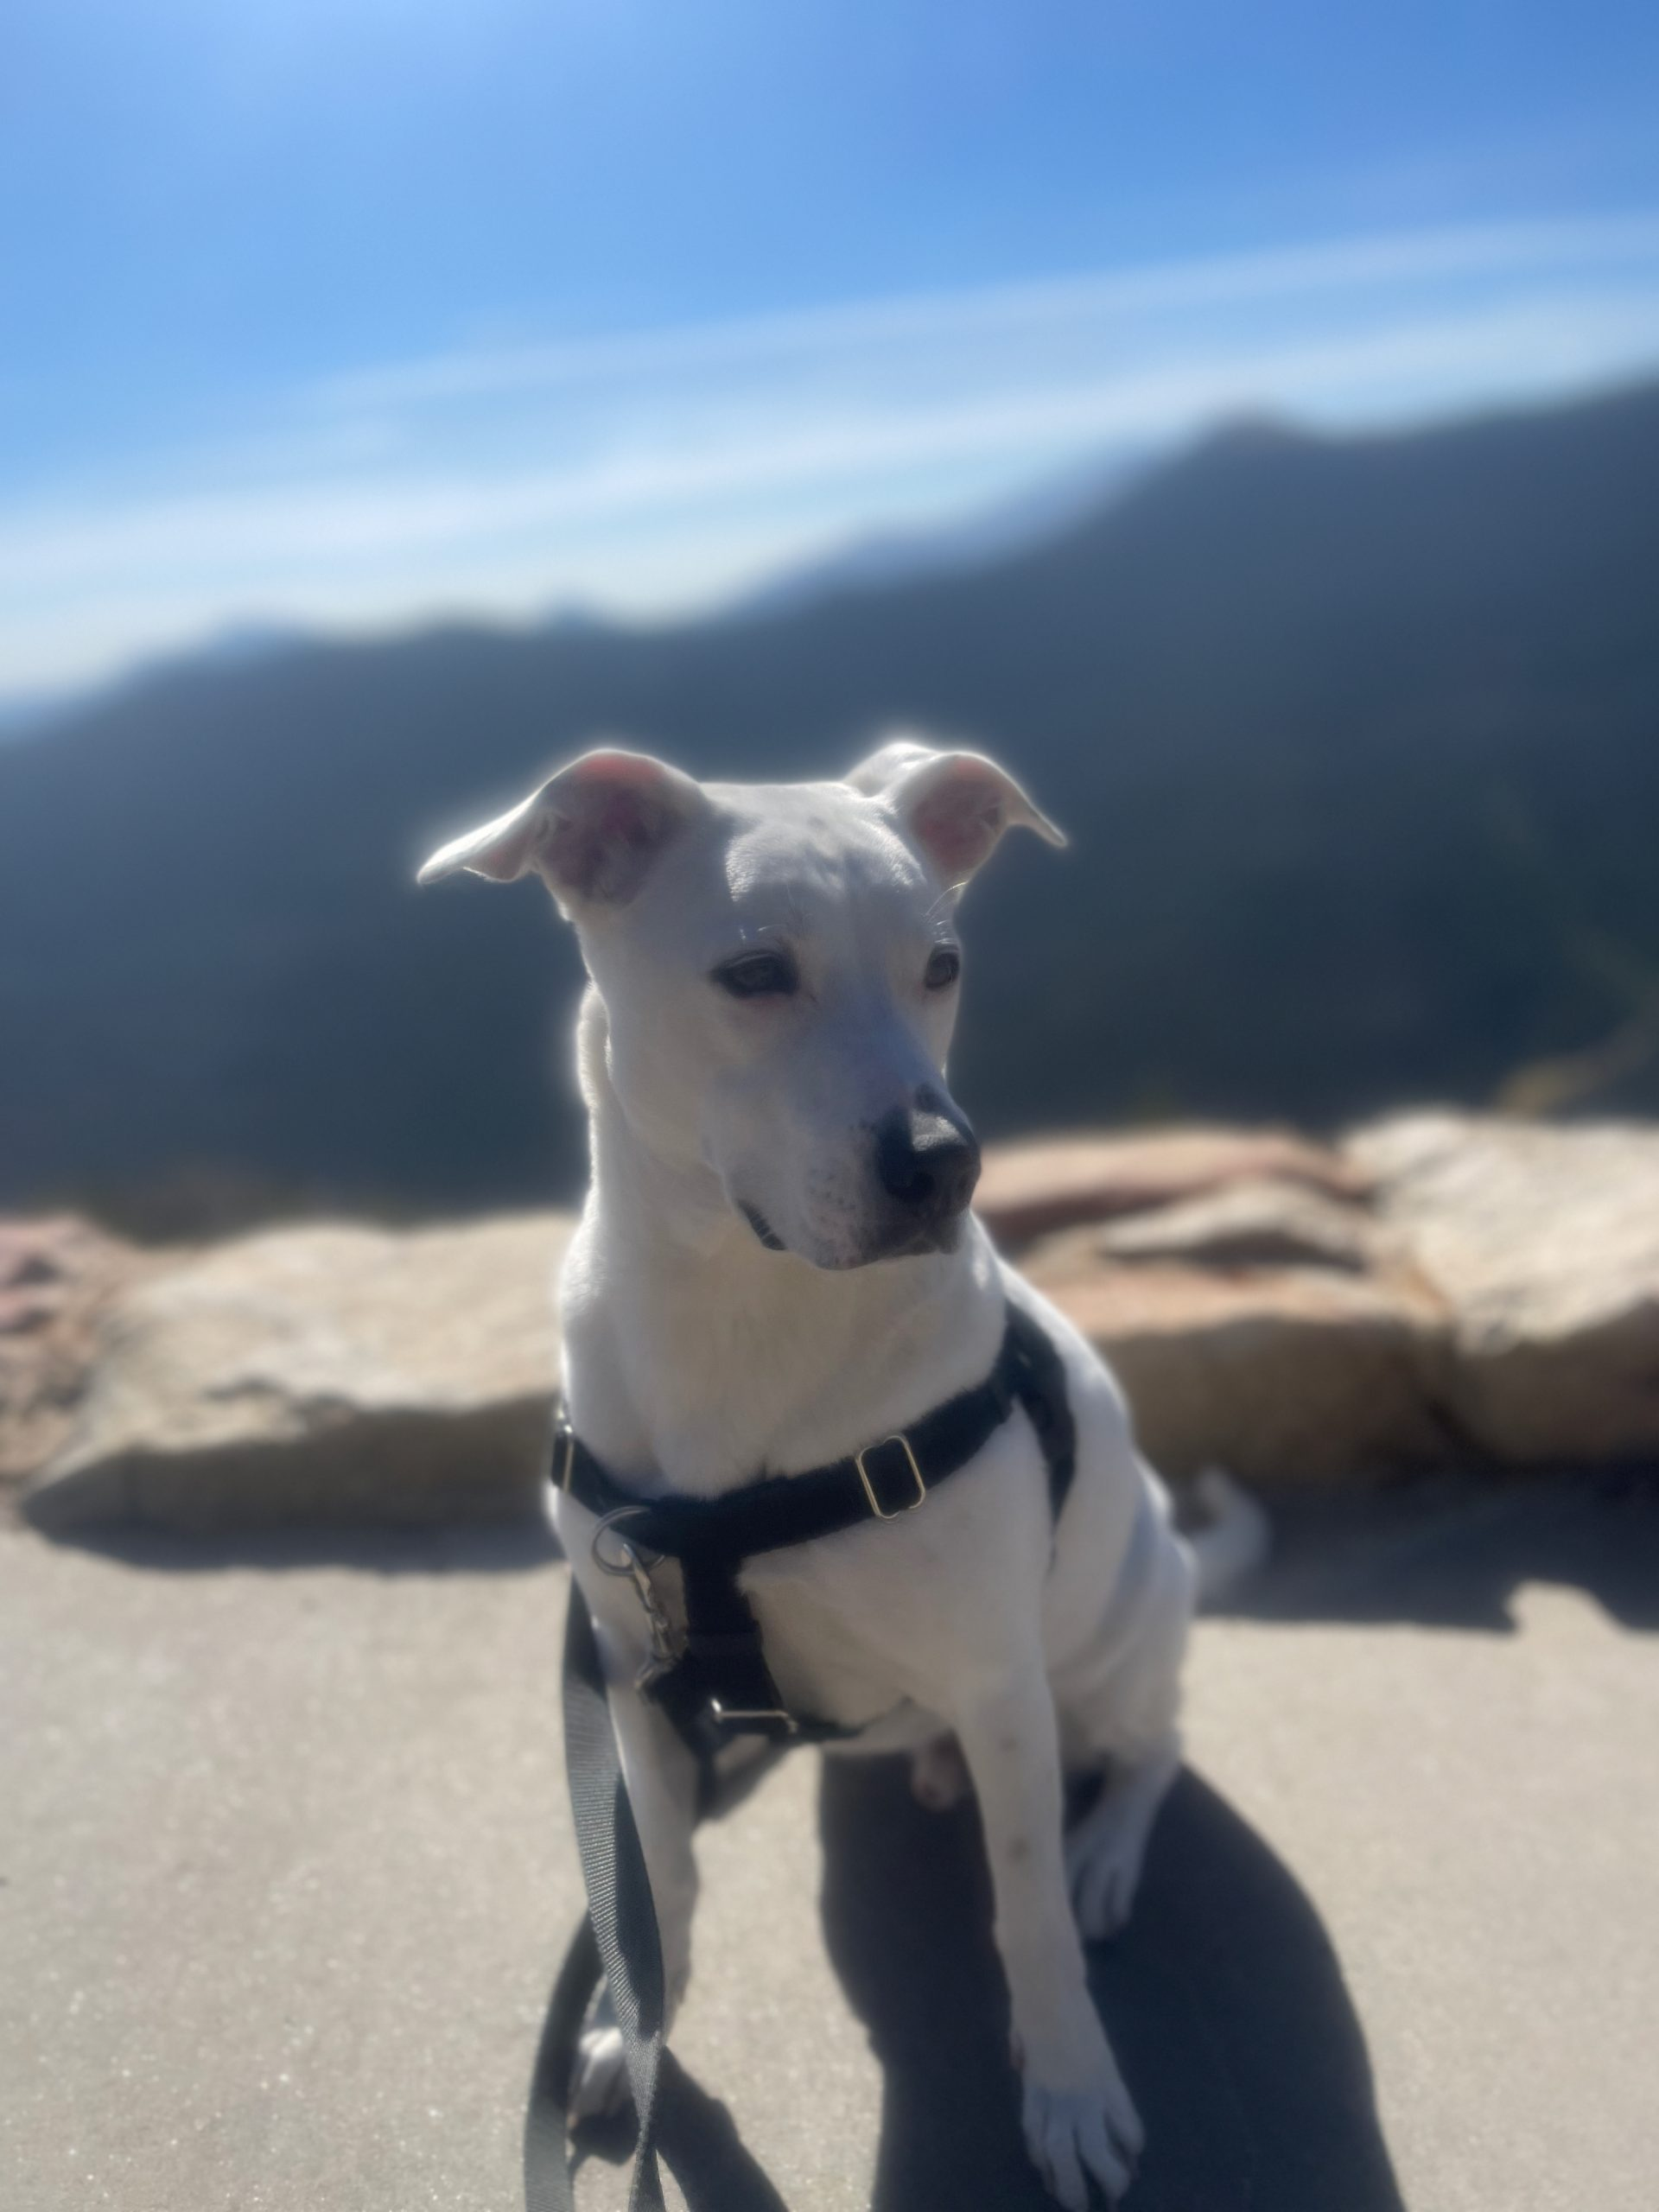 dog in harness in front of mountain landscape